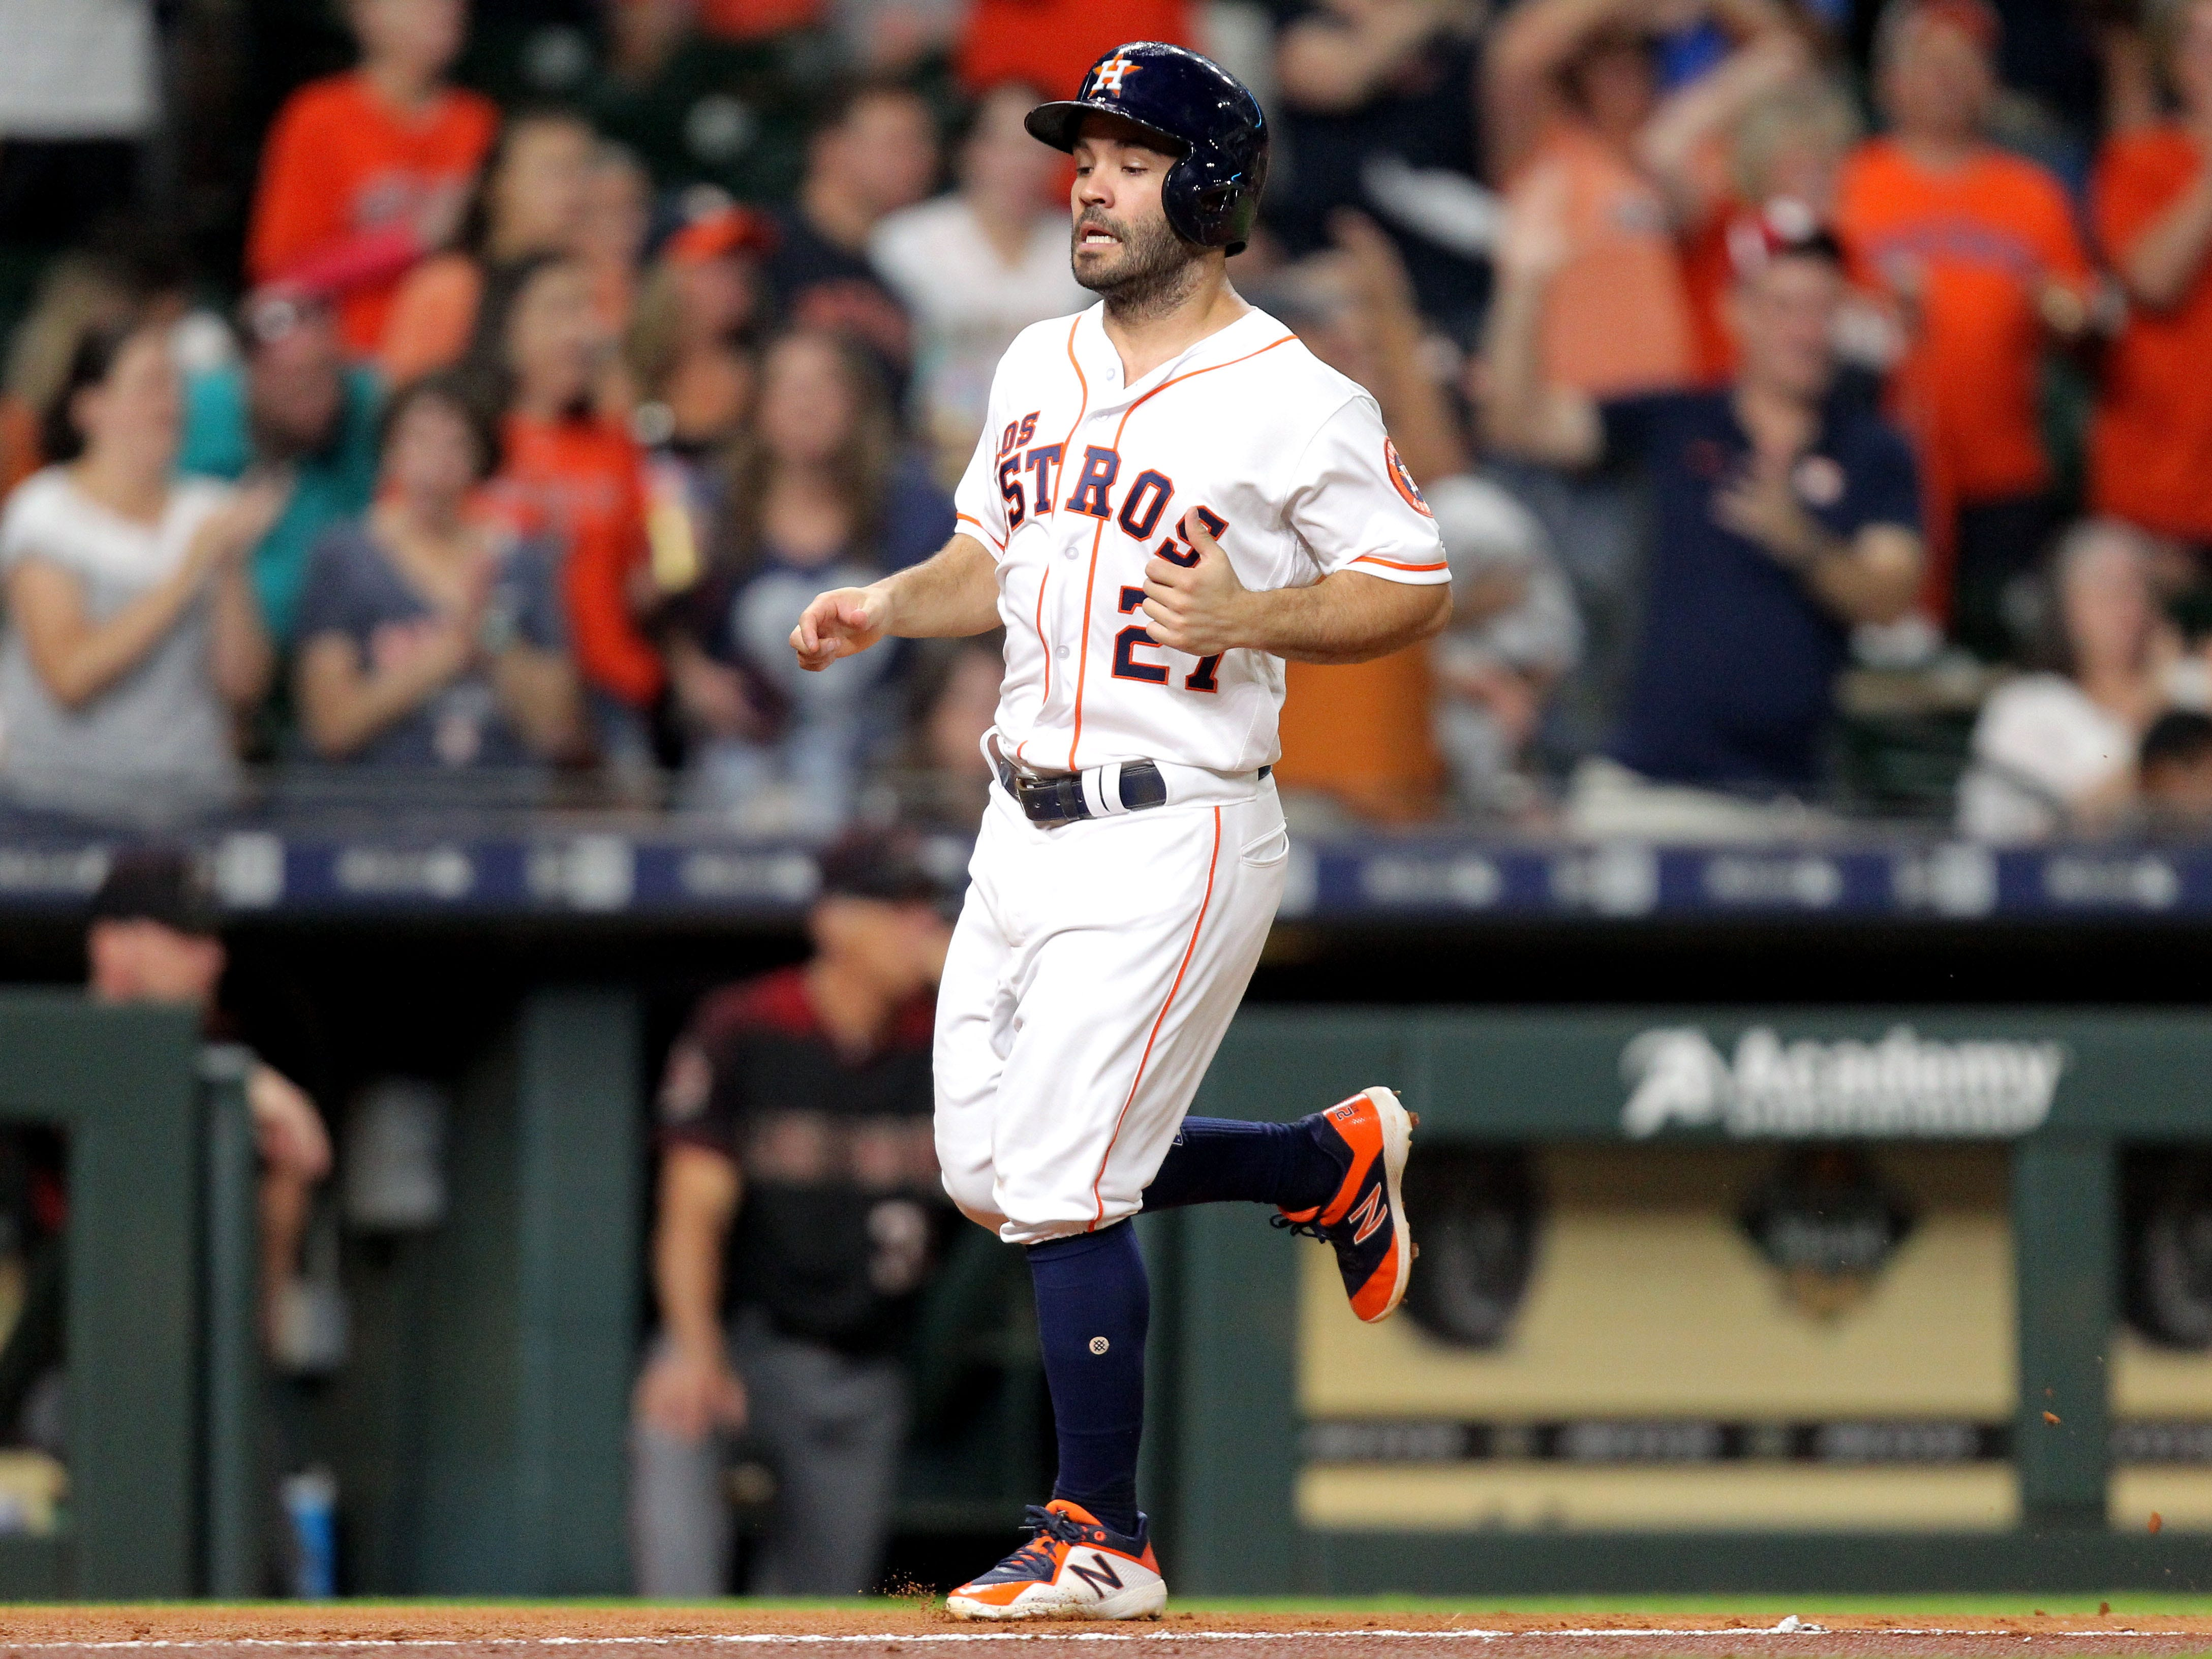 Sep 15, 2018; Houston, TX, USA; Houston Astros second baseman Jose Altuve (27) jogs home to score a run against the Arizona Diamondbacks during the fourth inning at Minute Maid Park. Mandatory Credit: Erik Williams-USA TODAY Sports